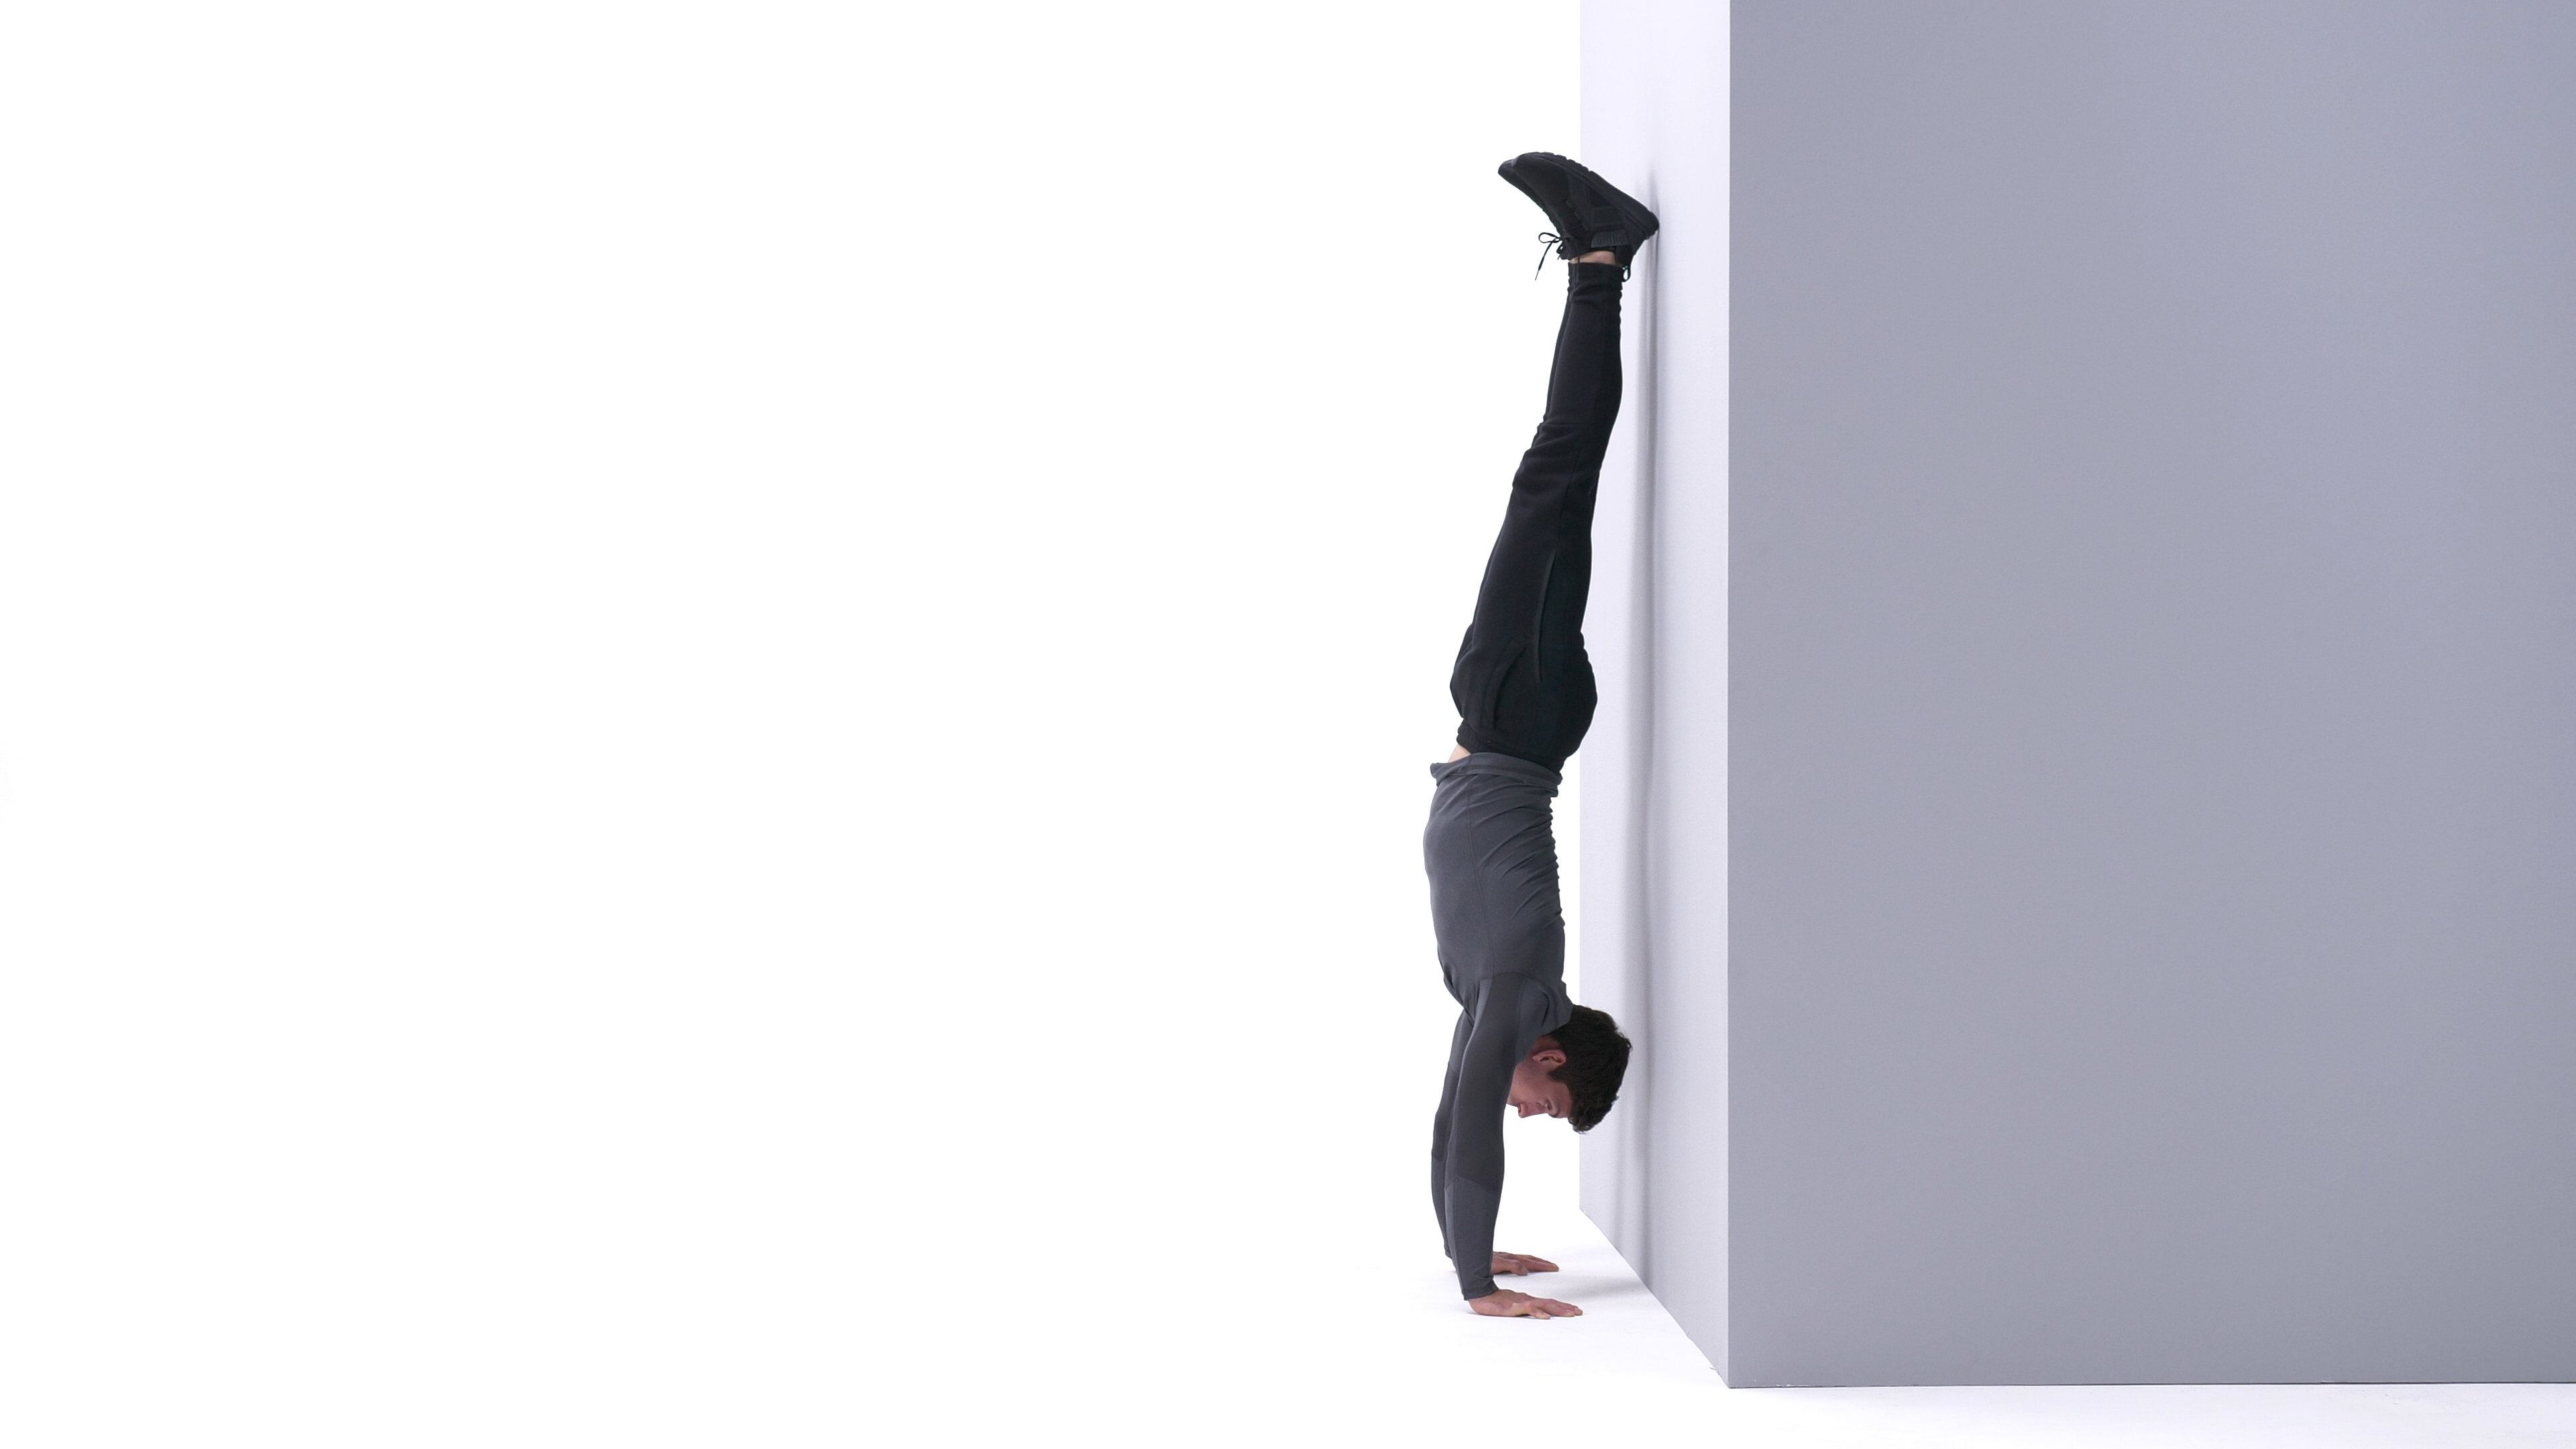 Handstand push-up image